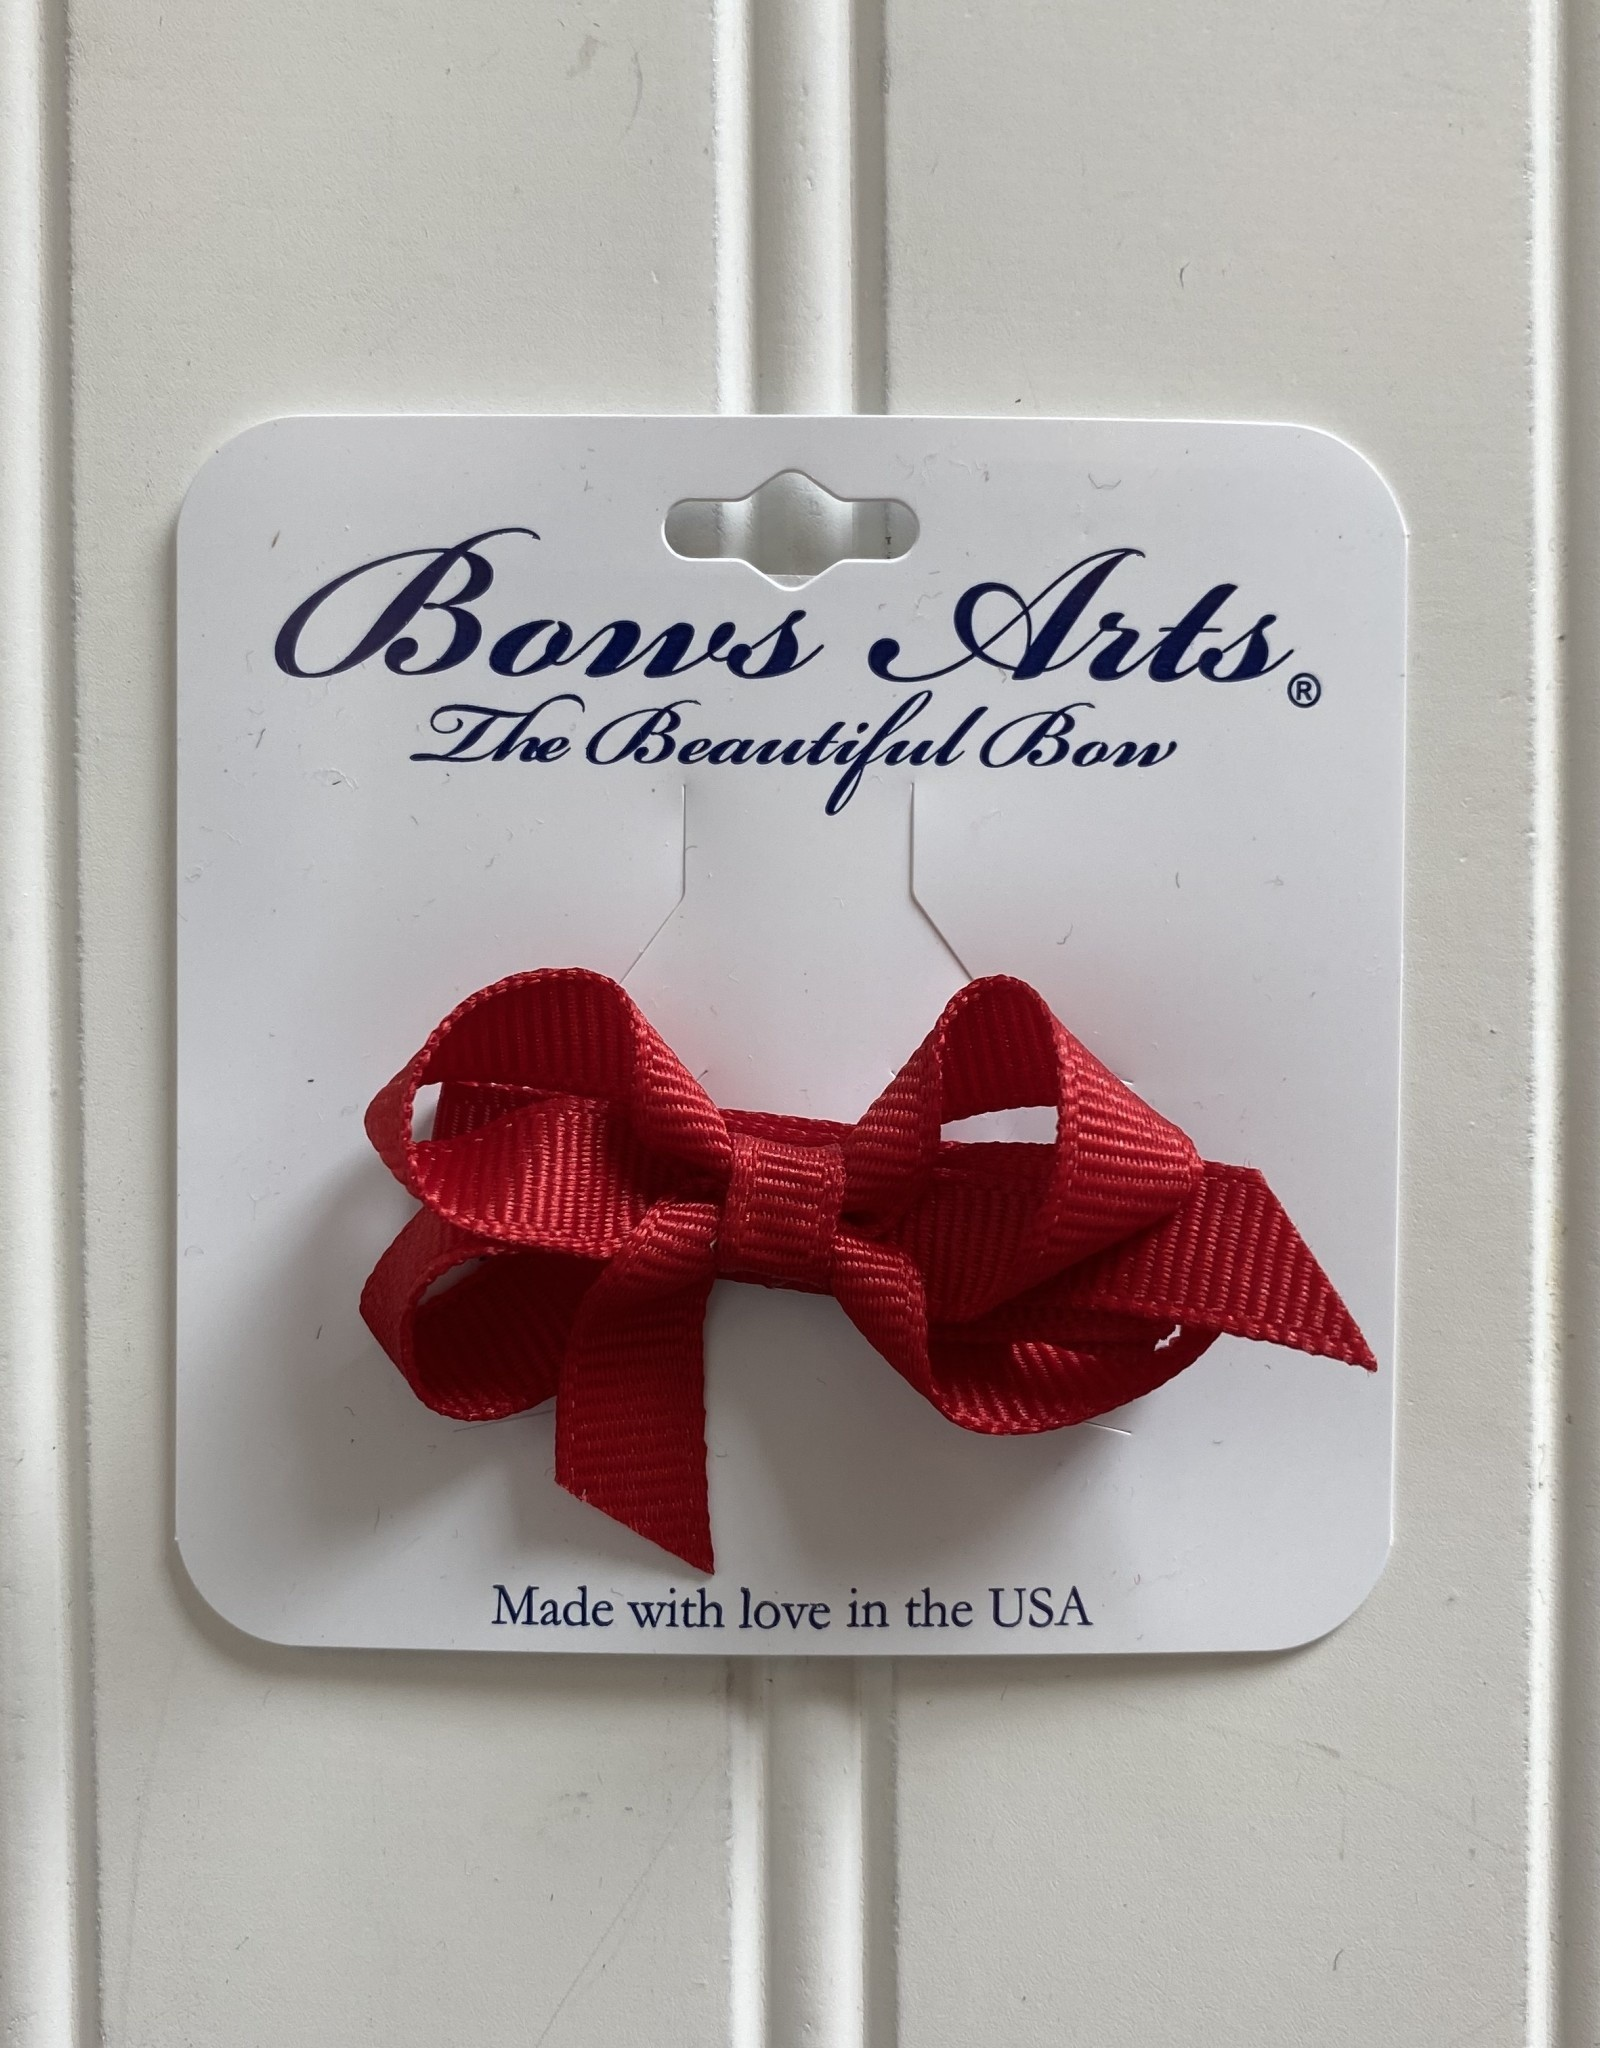 "Bows Arts Infant Classic Bow 2"" Grippie Clippie - Red"